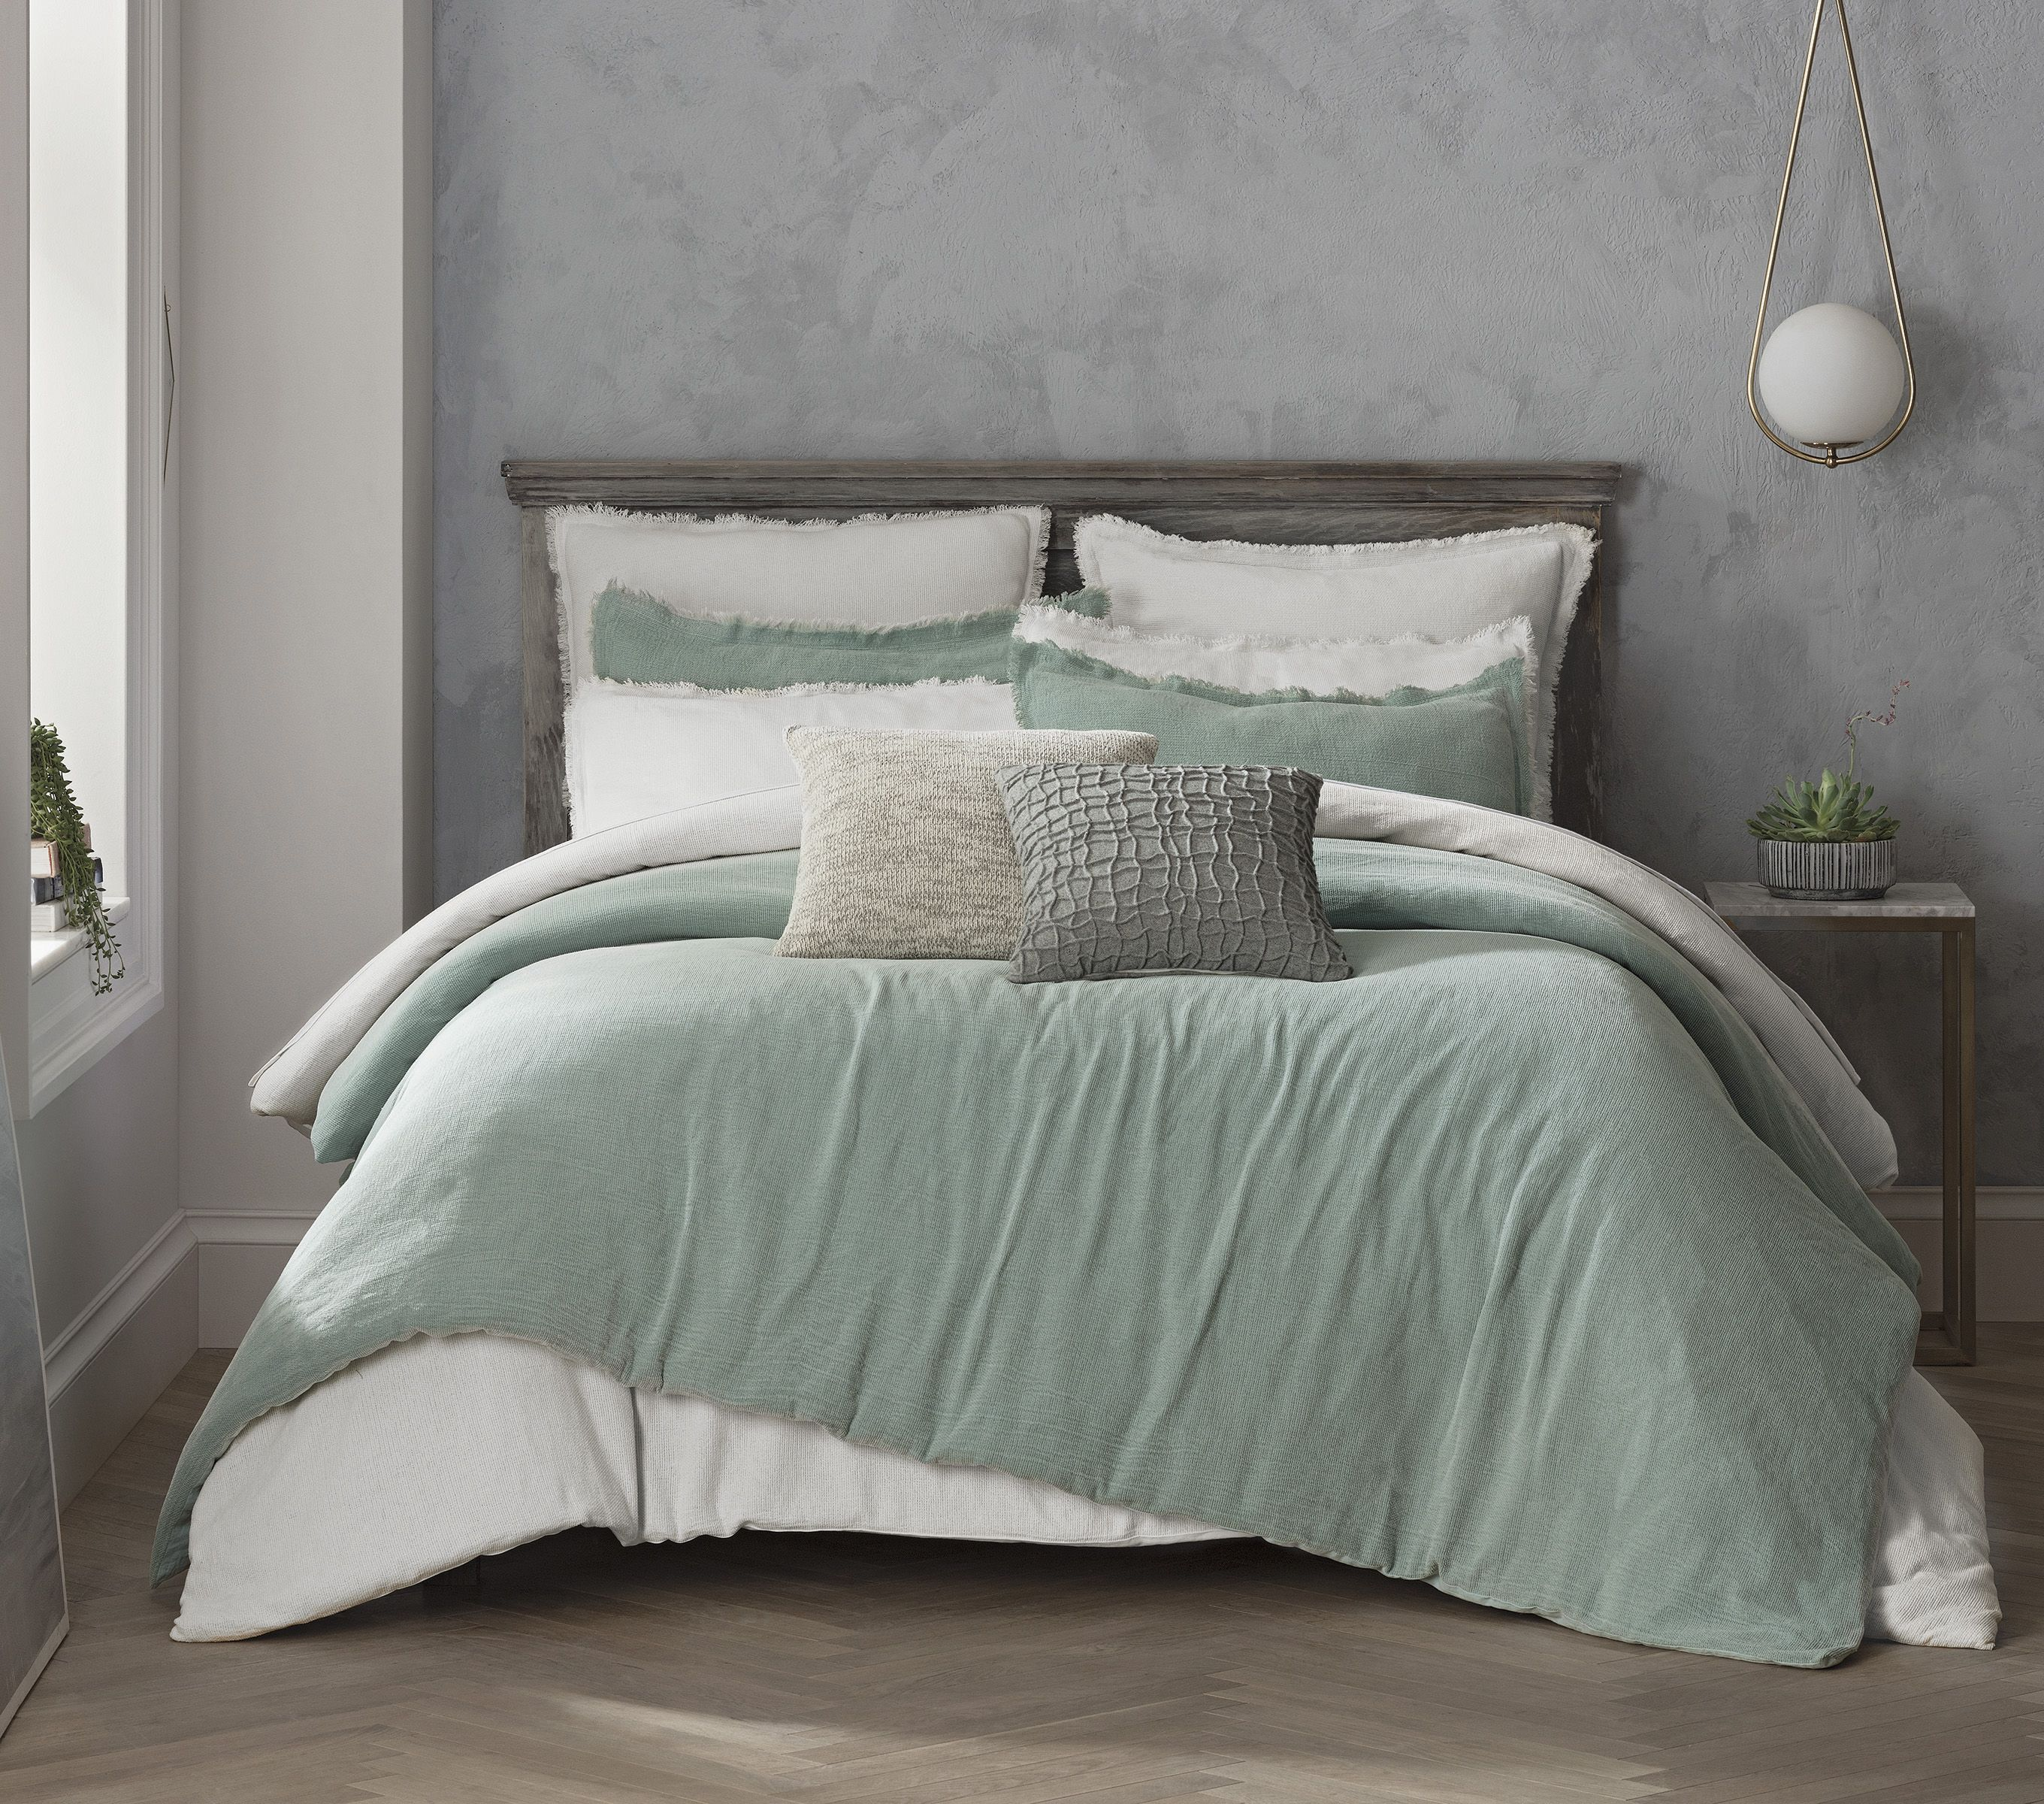 Reese Is A Cozy Soft Duvet Cover Set From Highline Bedding Co S Habit Collection Livableluxury Masterbedroom Duvetcover Bedroominspo Decor